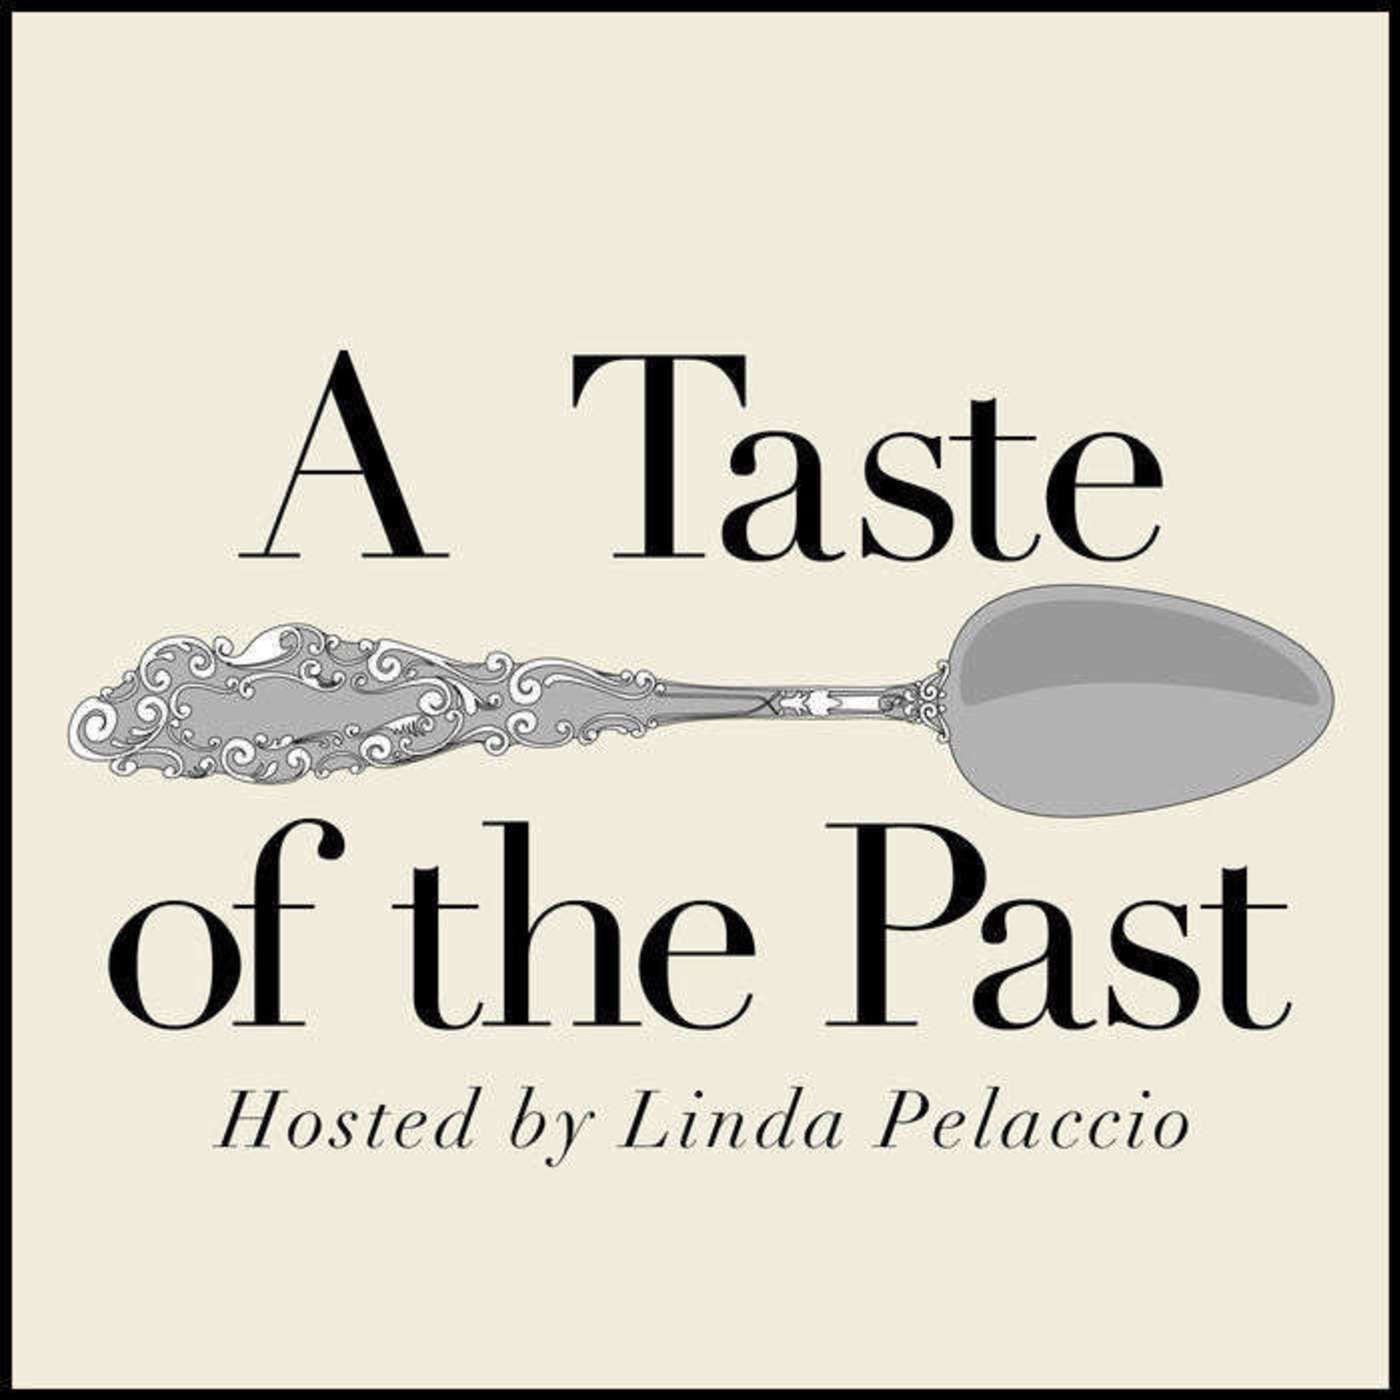 Episode 138: Roman Chefs Look to the Past